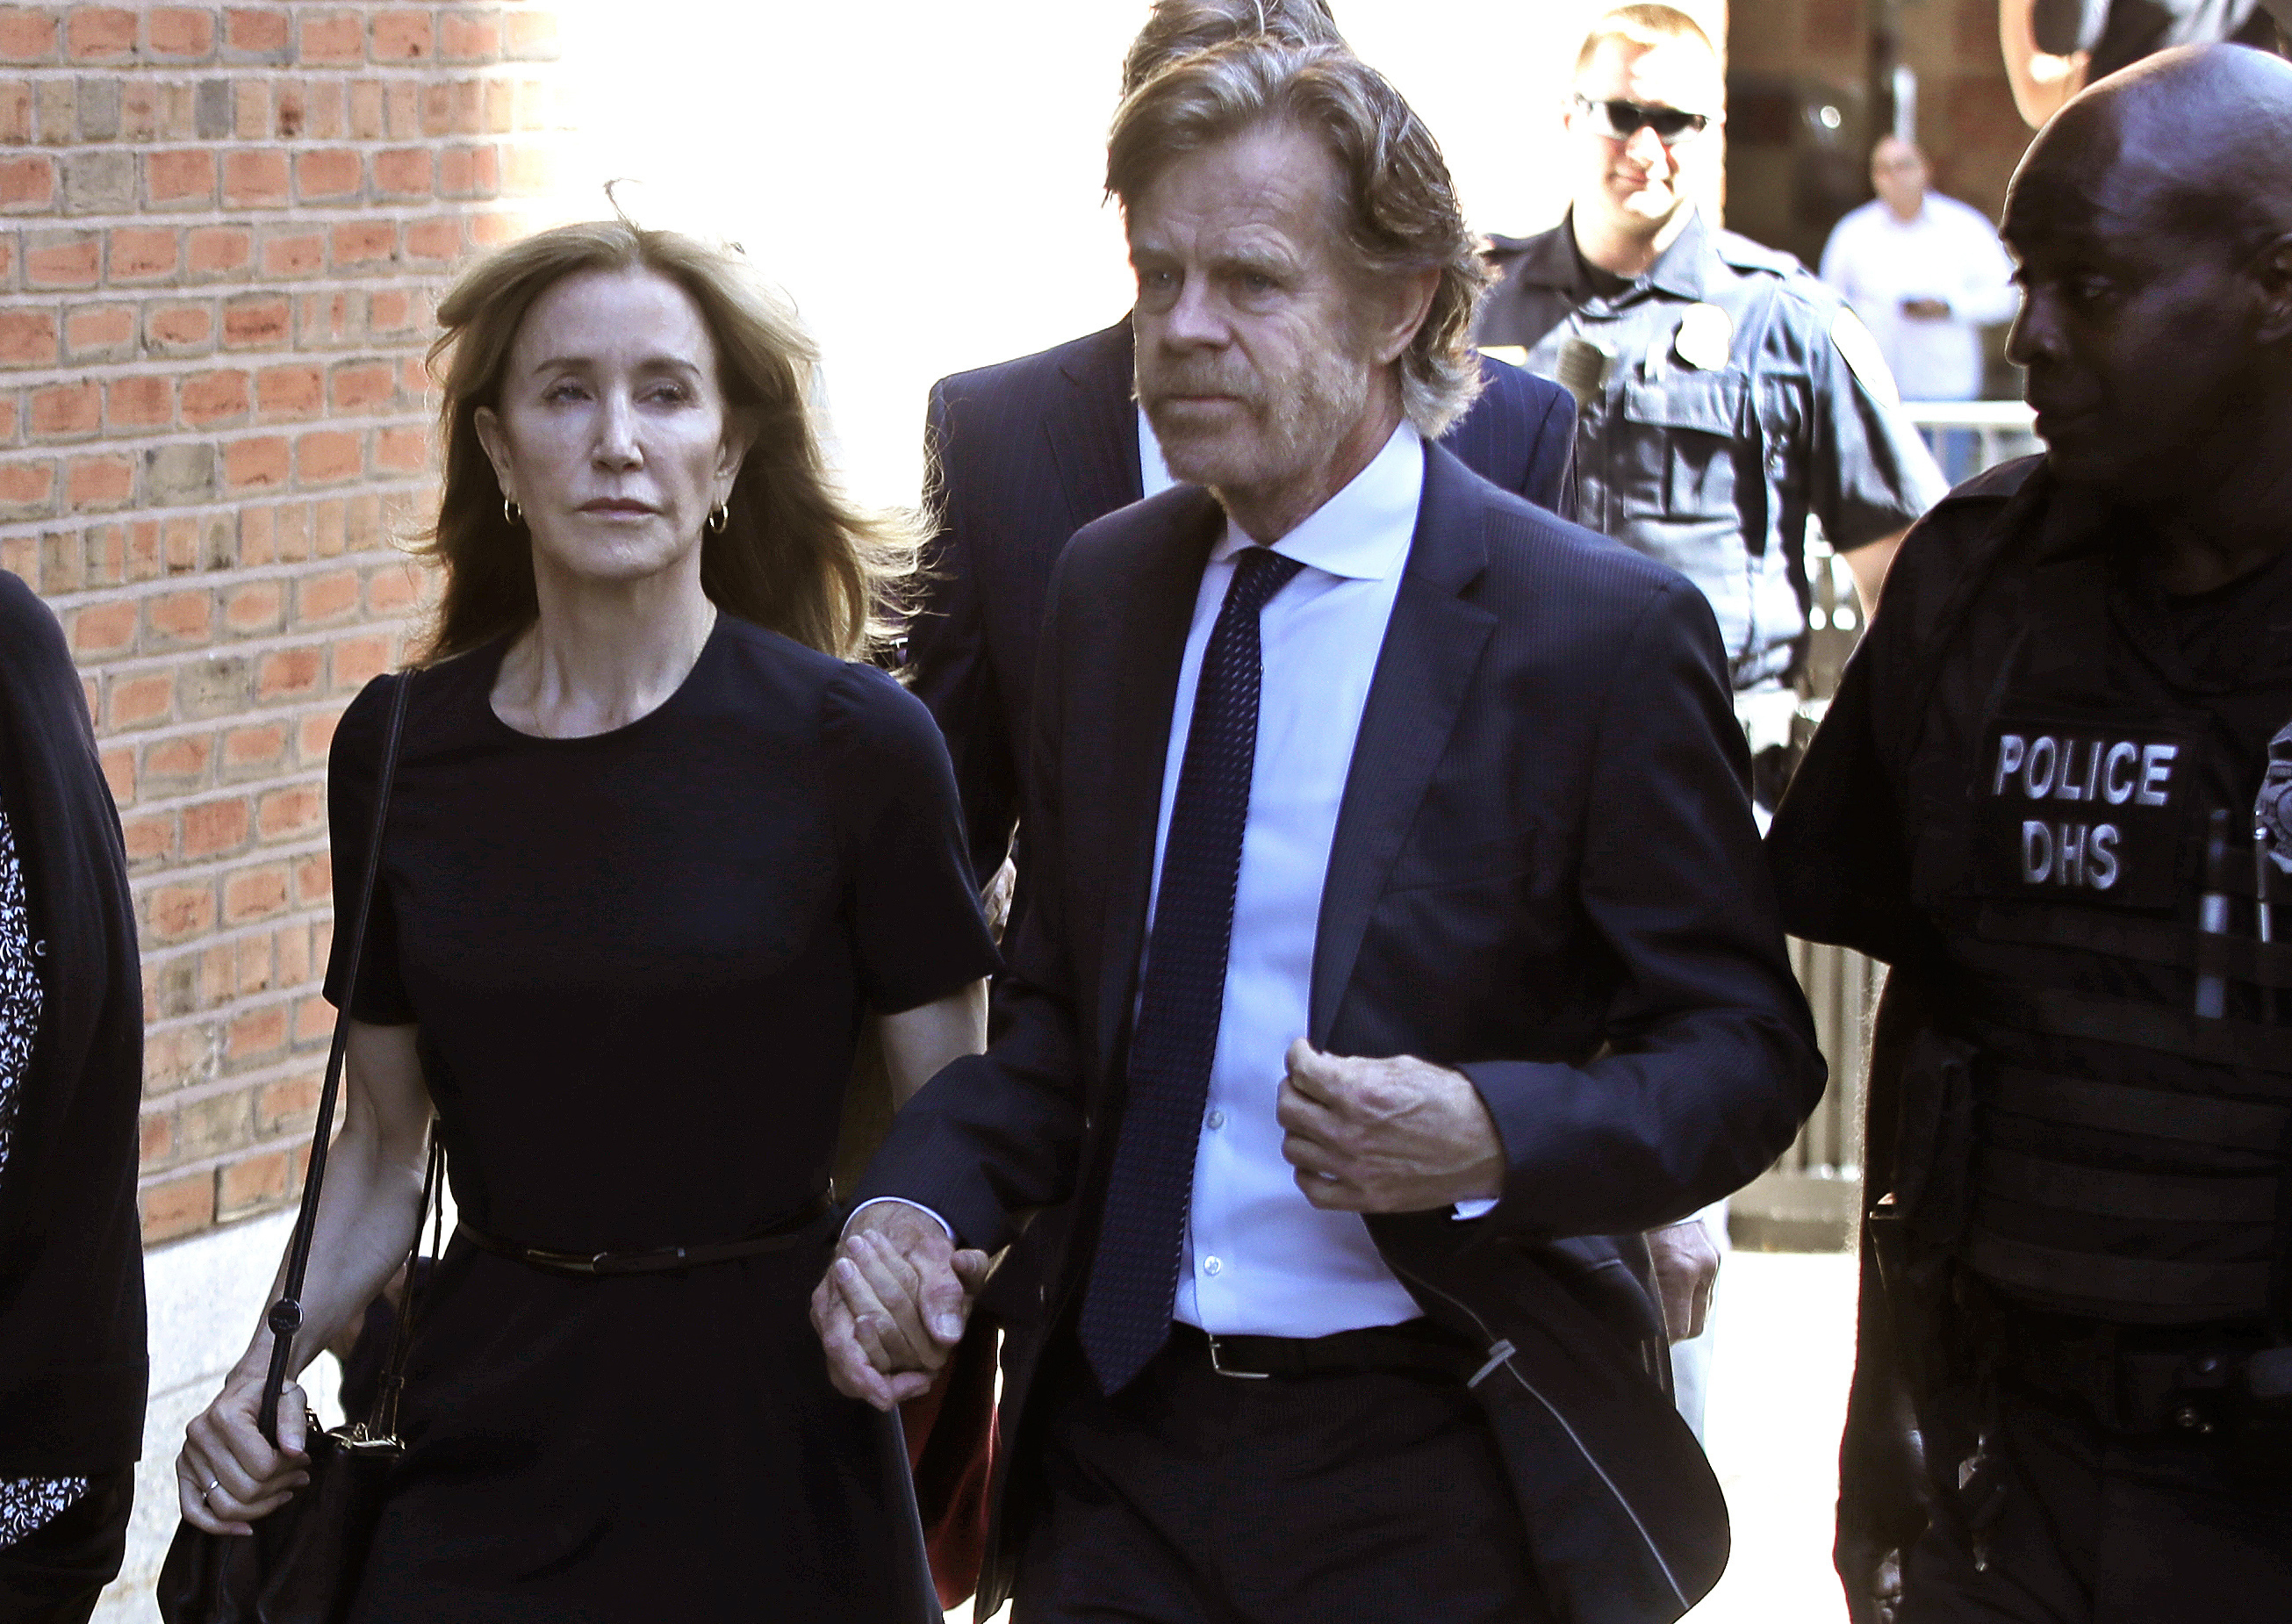 Felicity Huffman arrives at federal court with her husband William H. Macy for sentencing in a nationwide college admissions bribery scandal, Friday, Sept. 13, 2019, in Boston. (AP Photo/Elise Amendola)